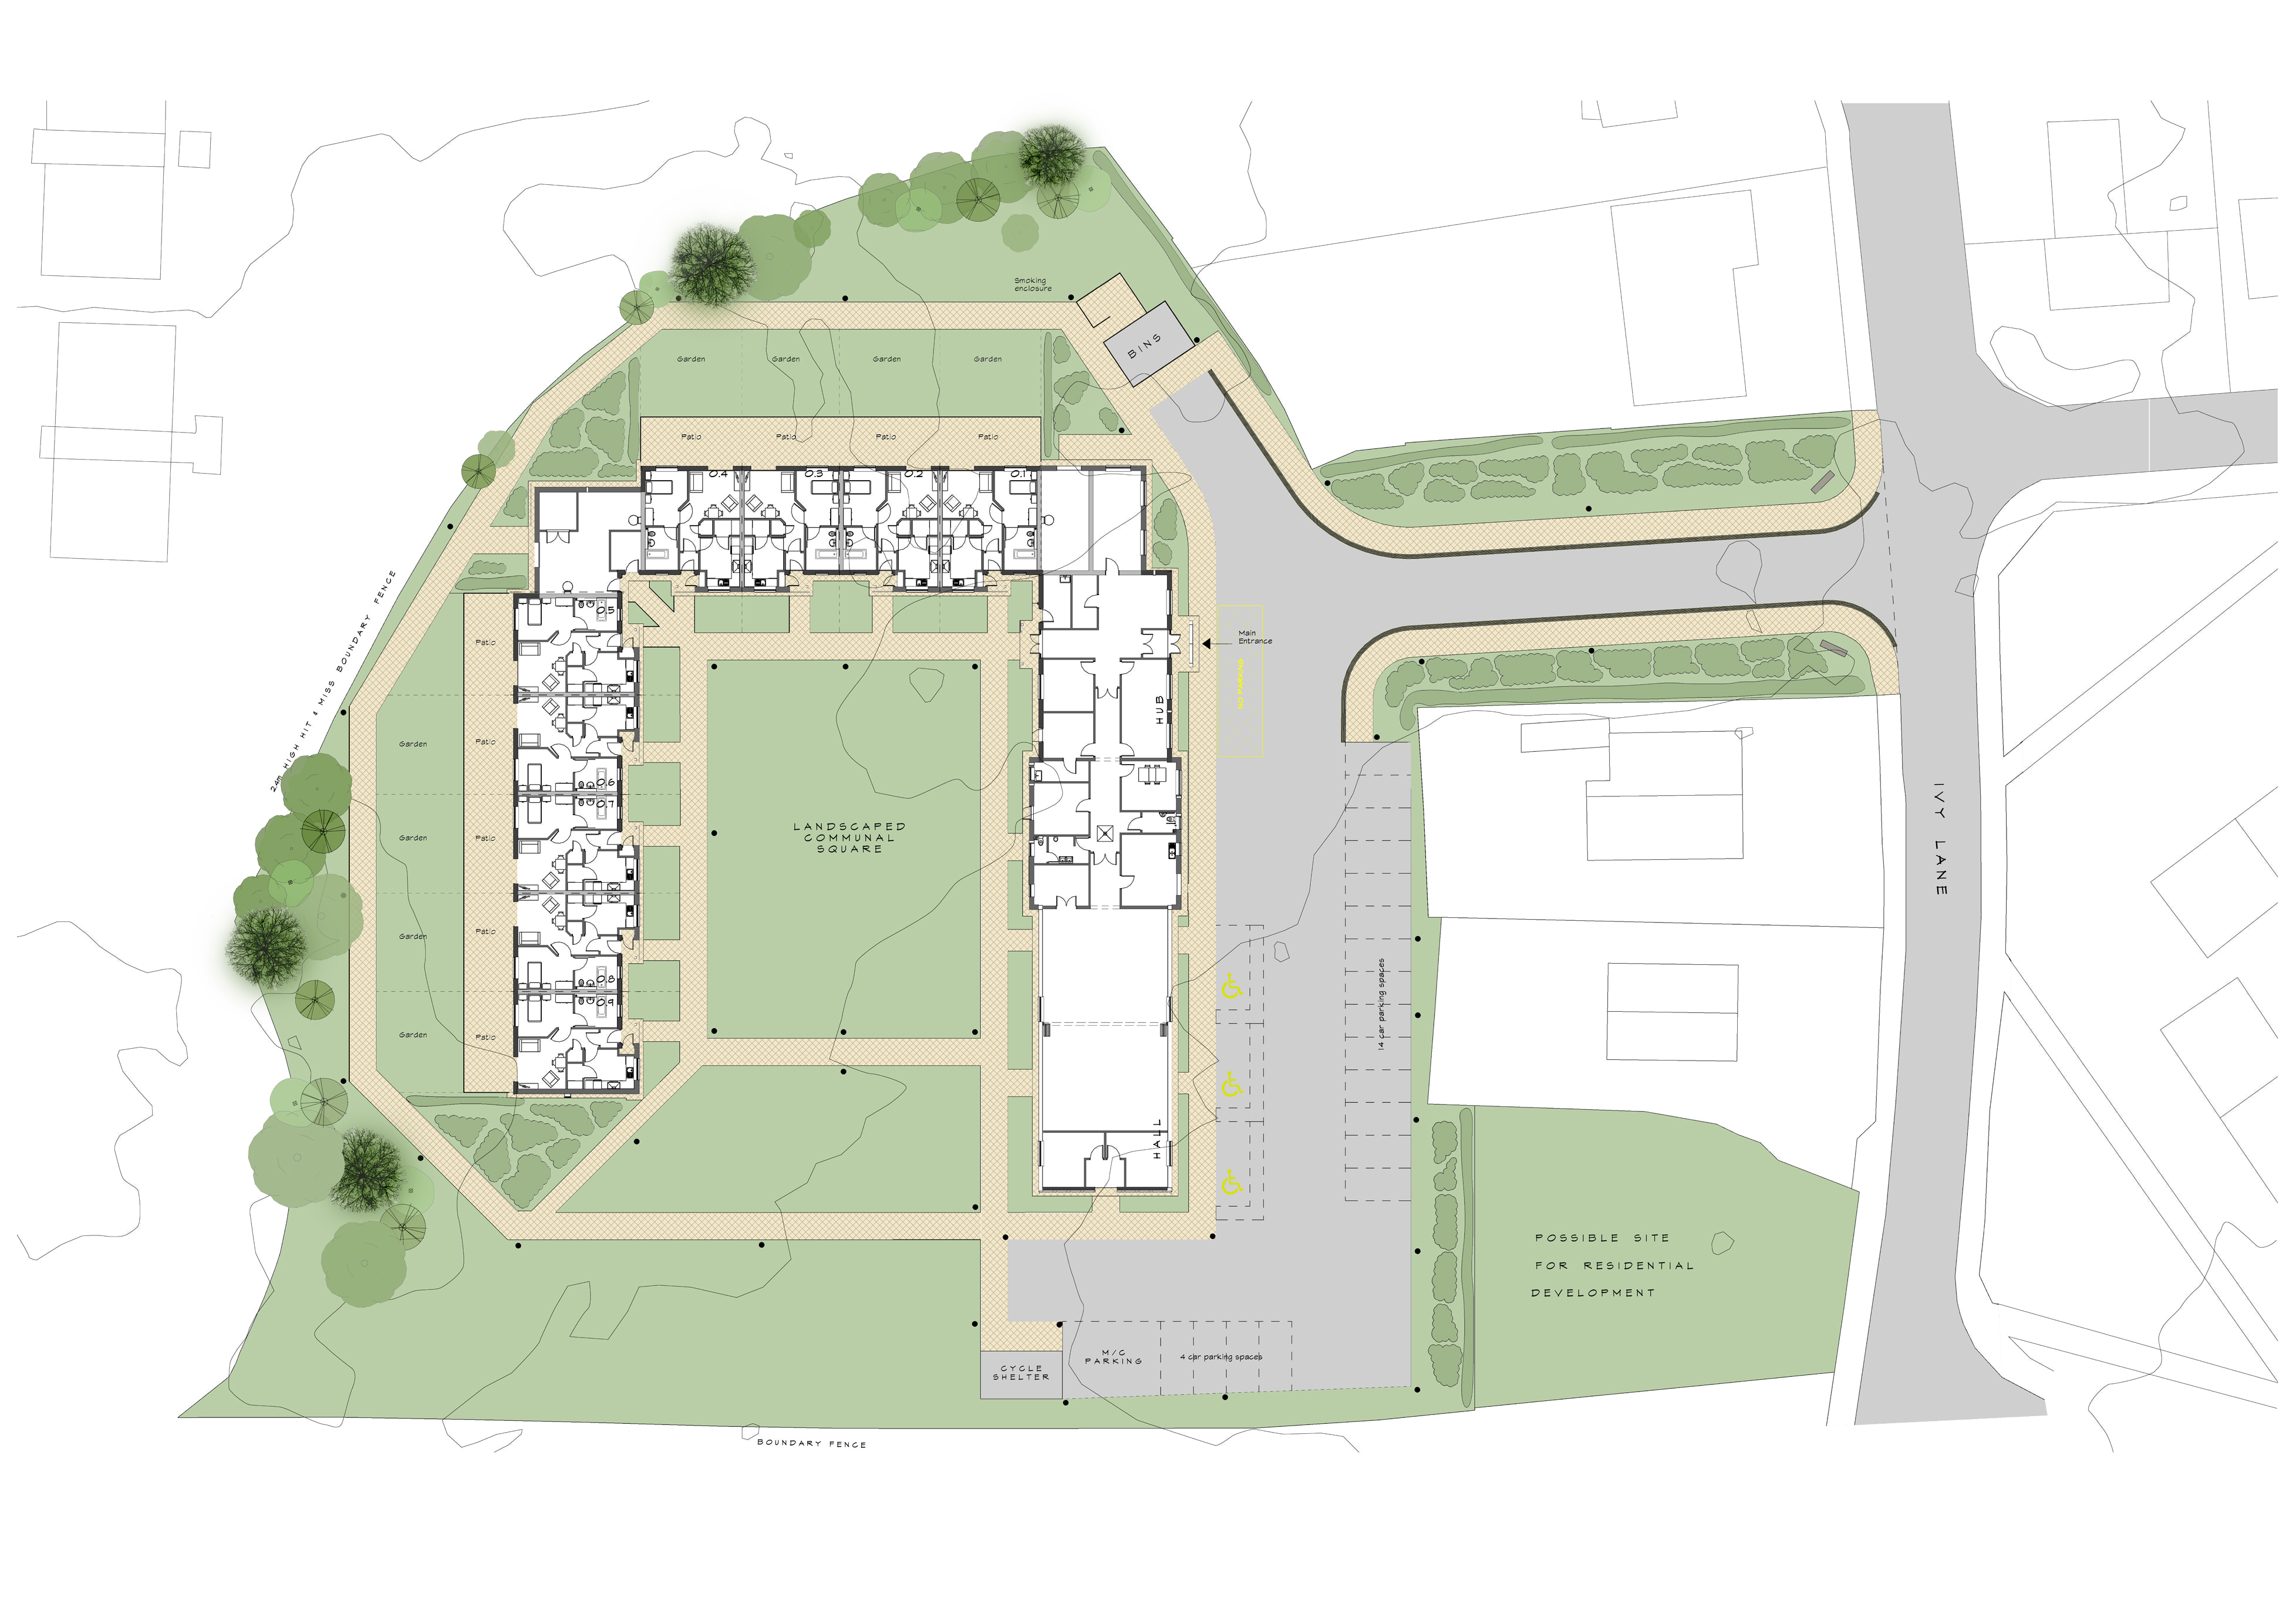 Stanley Mews site plan image